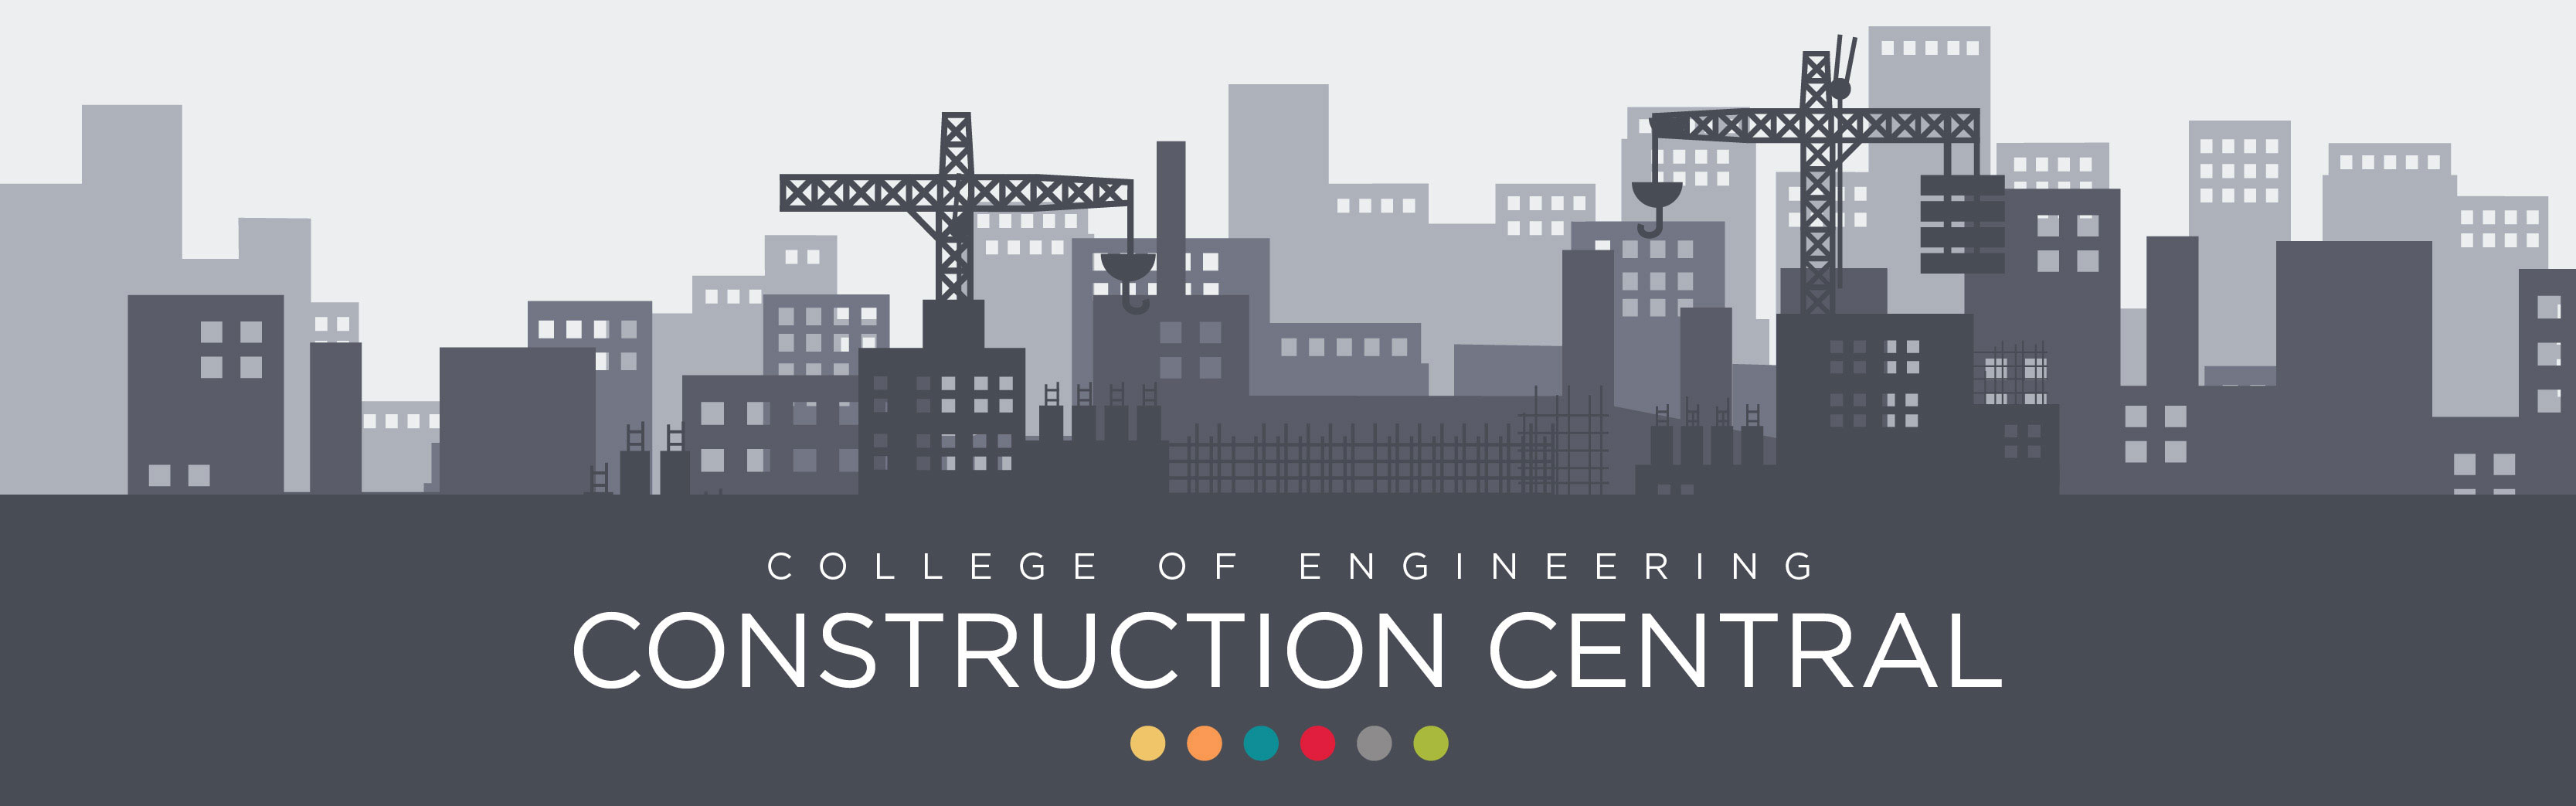 The Construction Central website will provide updates on the College of Engineering's transformational facilities renovations and new construction.